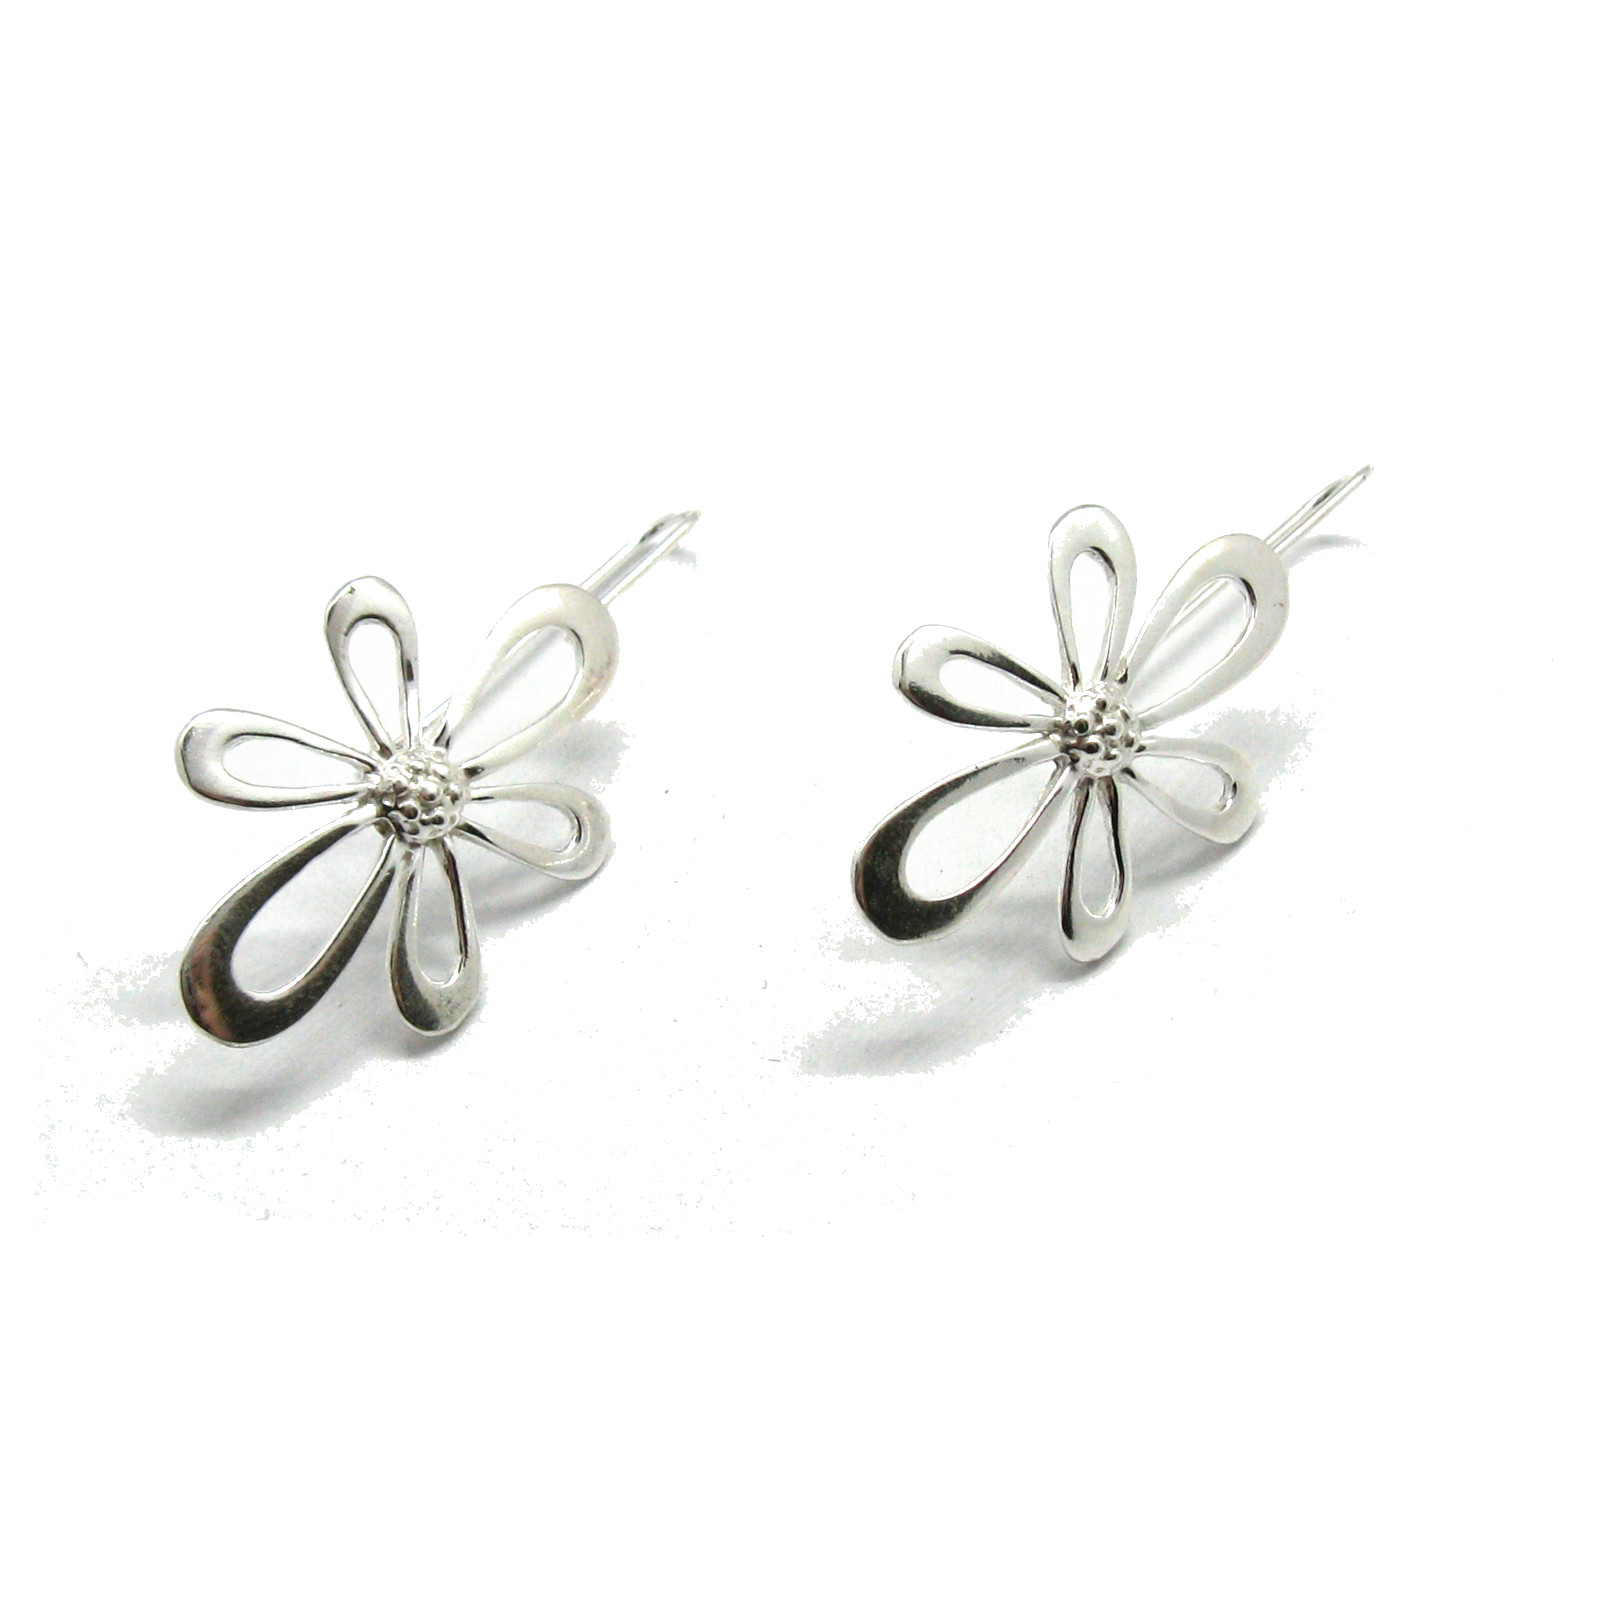 Silver earrings - E000760